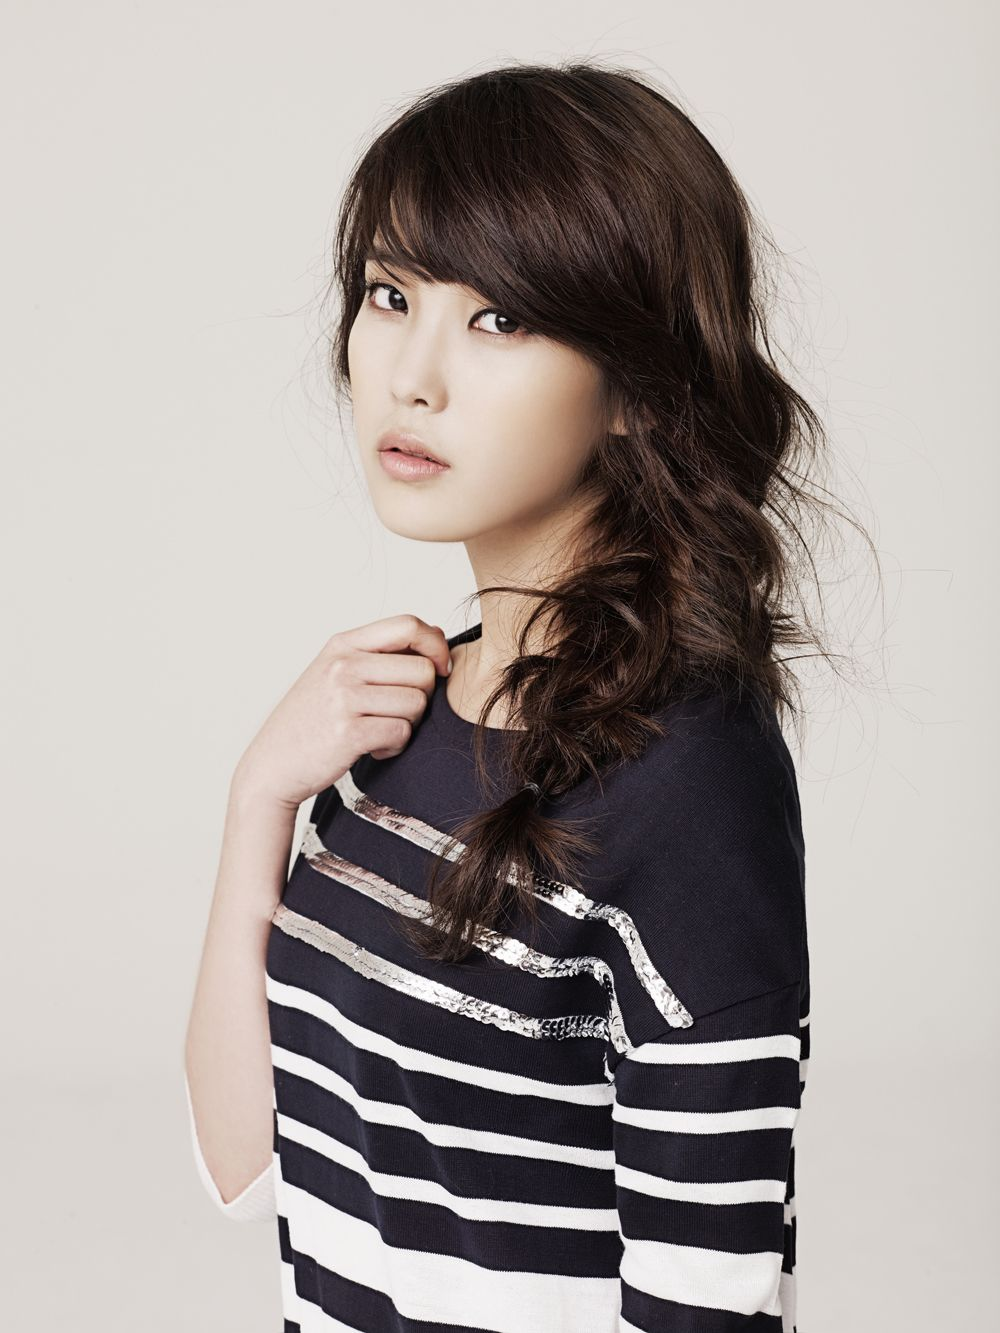 To acquire Big stylish bang ji eun picture trends